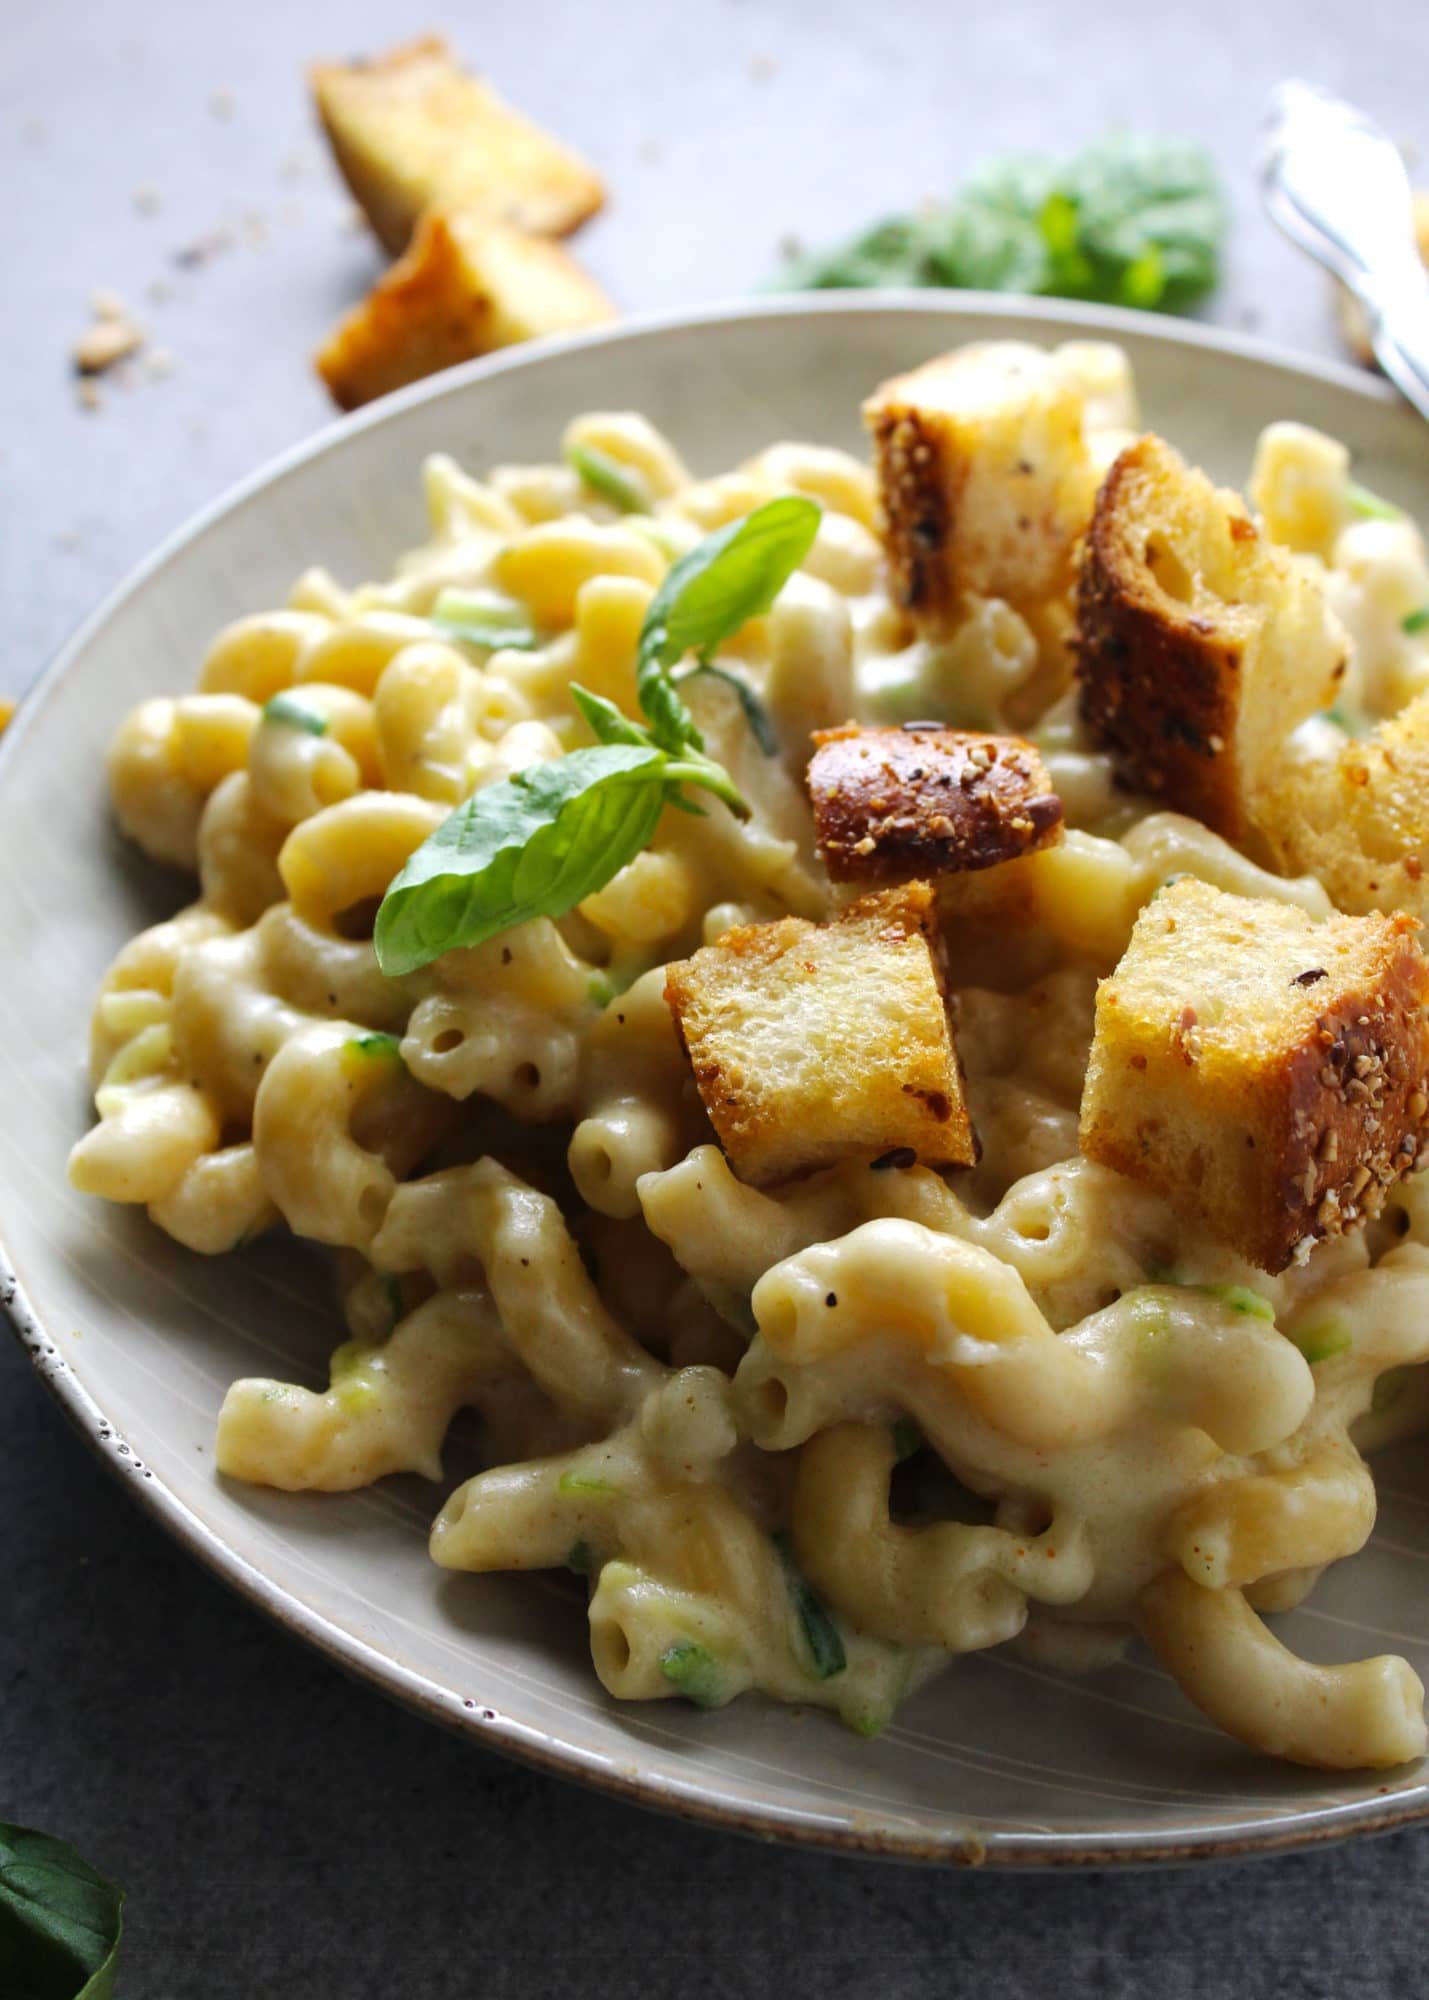 A super tasty comfort food favorite mac and cheese dinner for both kids and adults with hidden zucchini that even the pickiest eaters will eat | via @AimeeMarsLiving | #Macaroni #Cheese #Zucchini